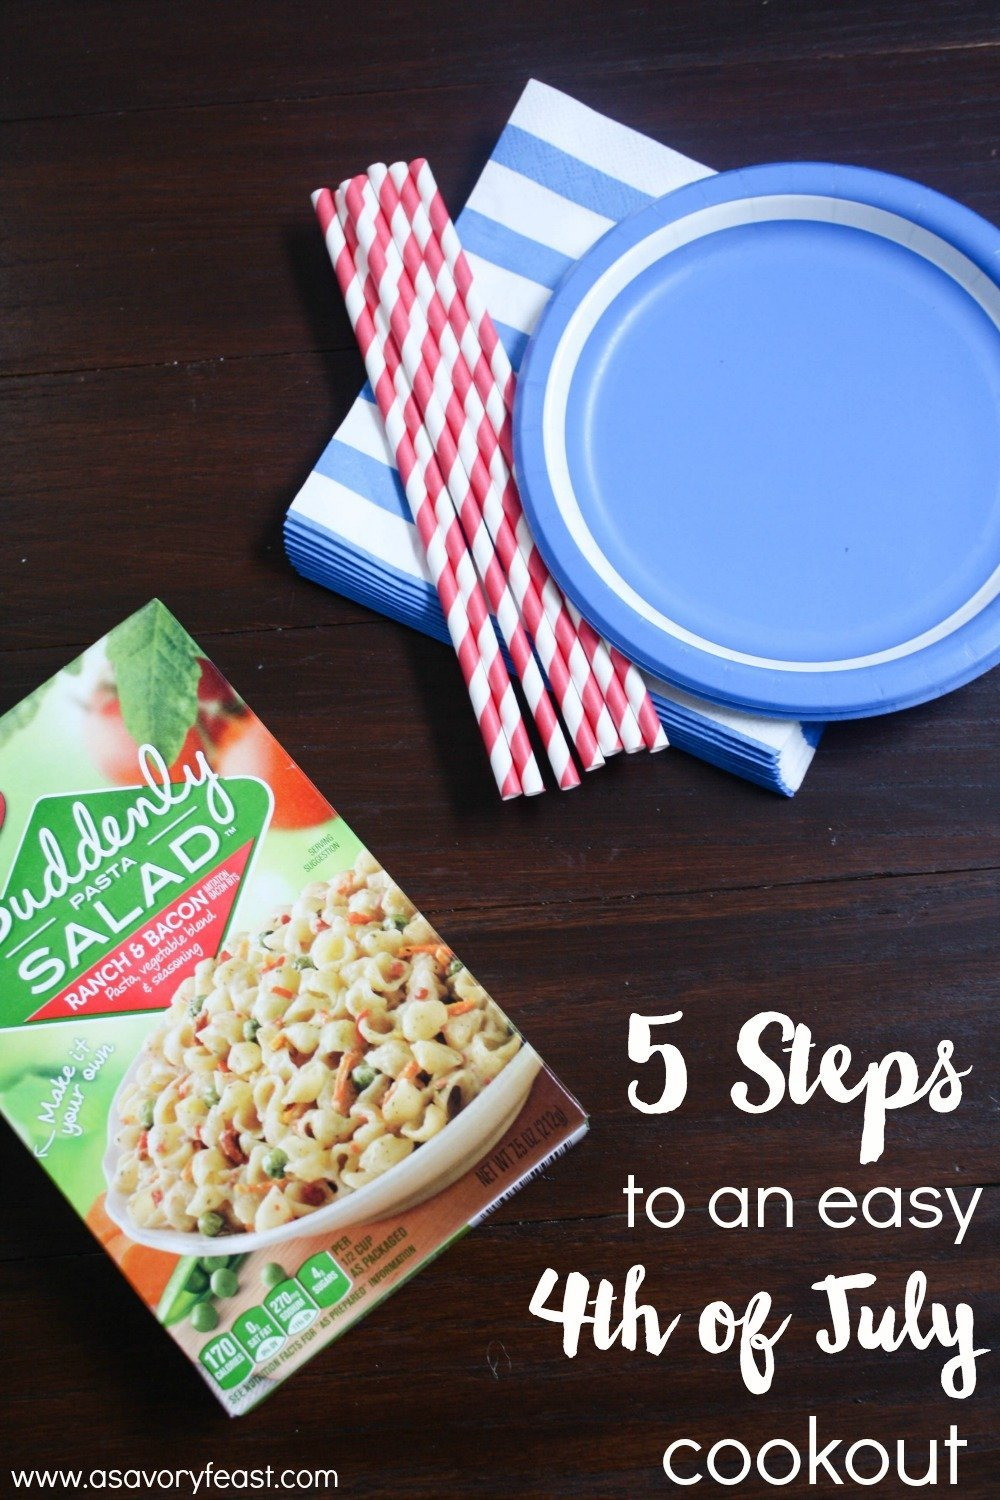 Planning a 4th of July Cookout? Get ready for your party in 5 easy steps.